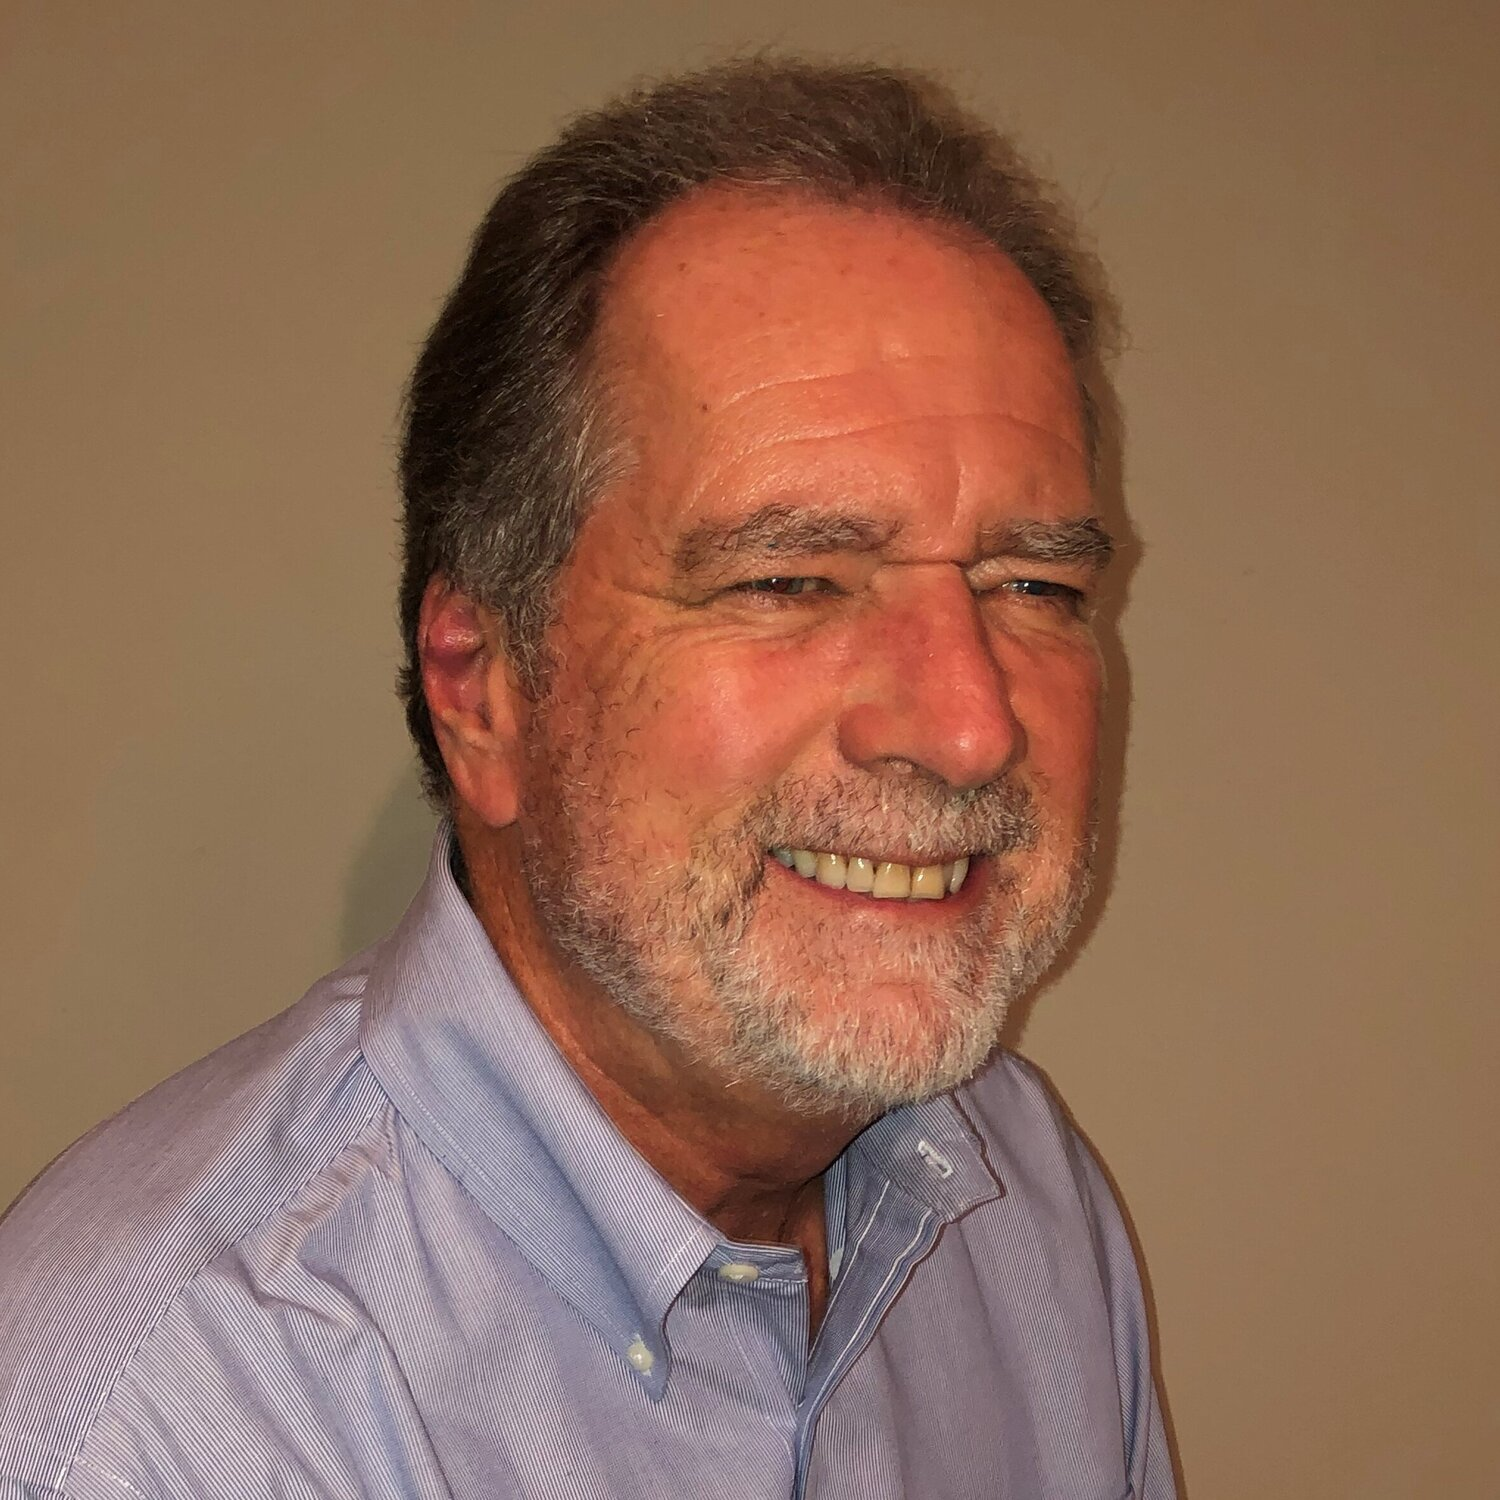 Bruce Gaynor - Sales and Marketing Executive